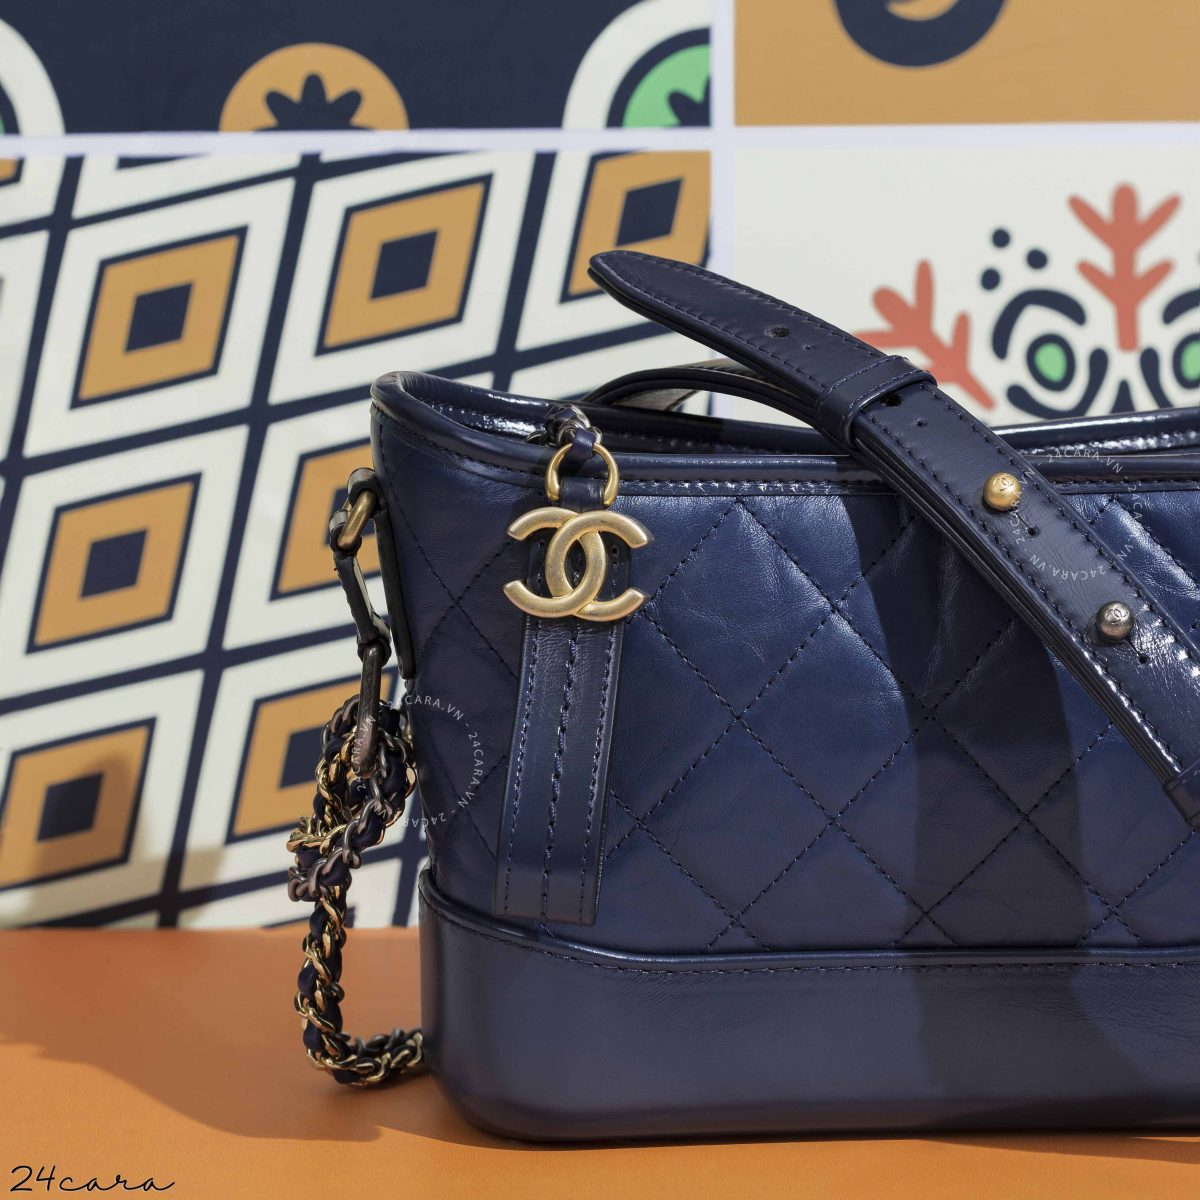 CHANEL'S GABRIELLE SMALL BLUE NAVY LEATHER HOBO BAG